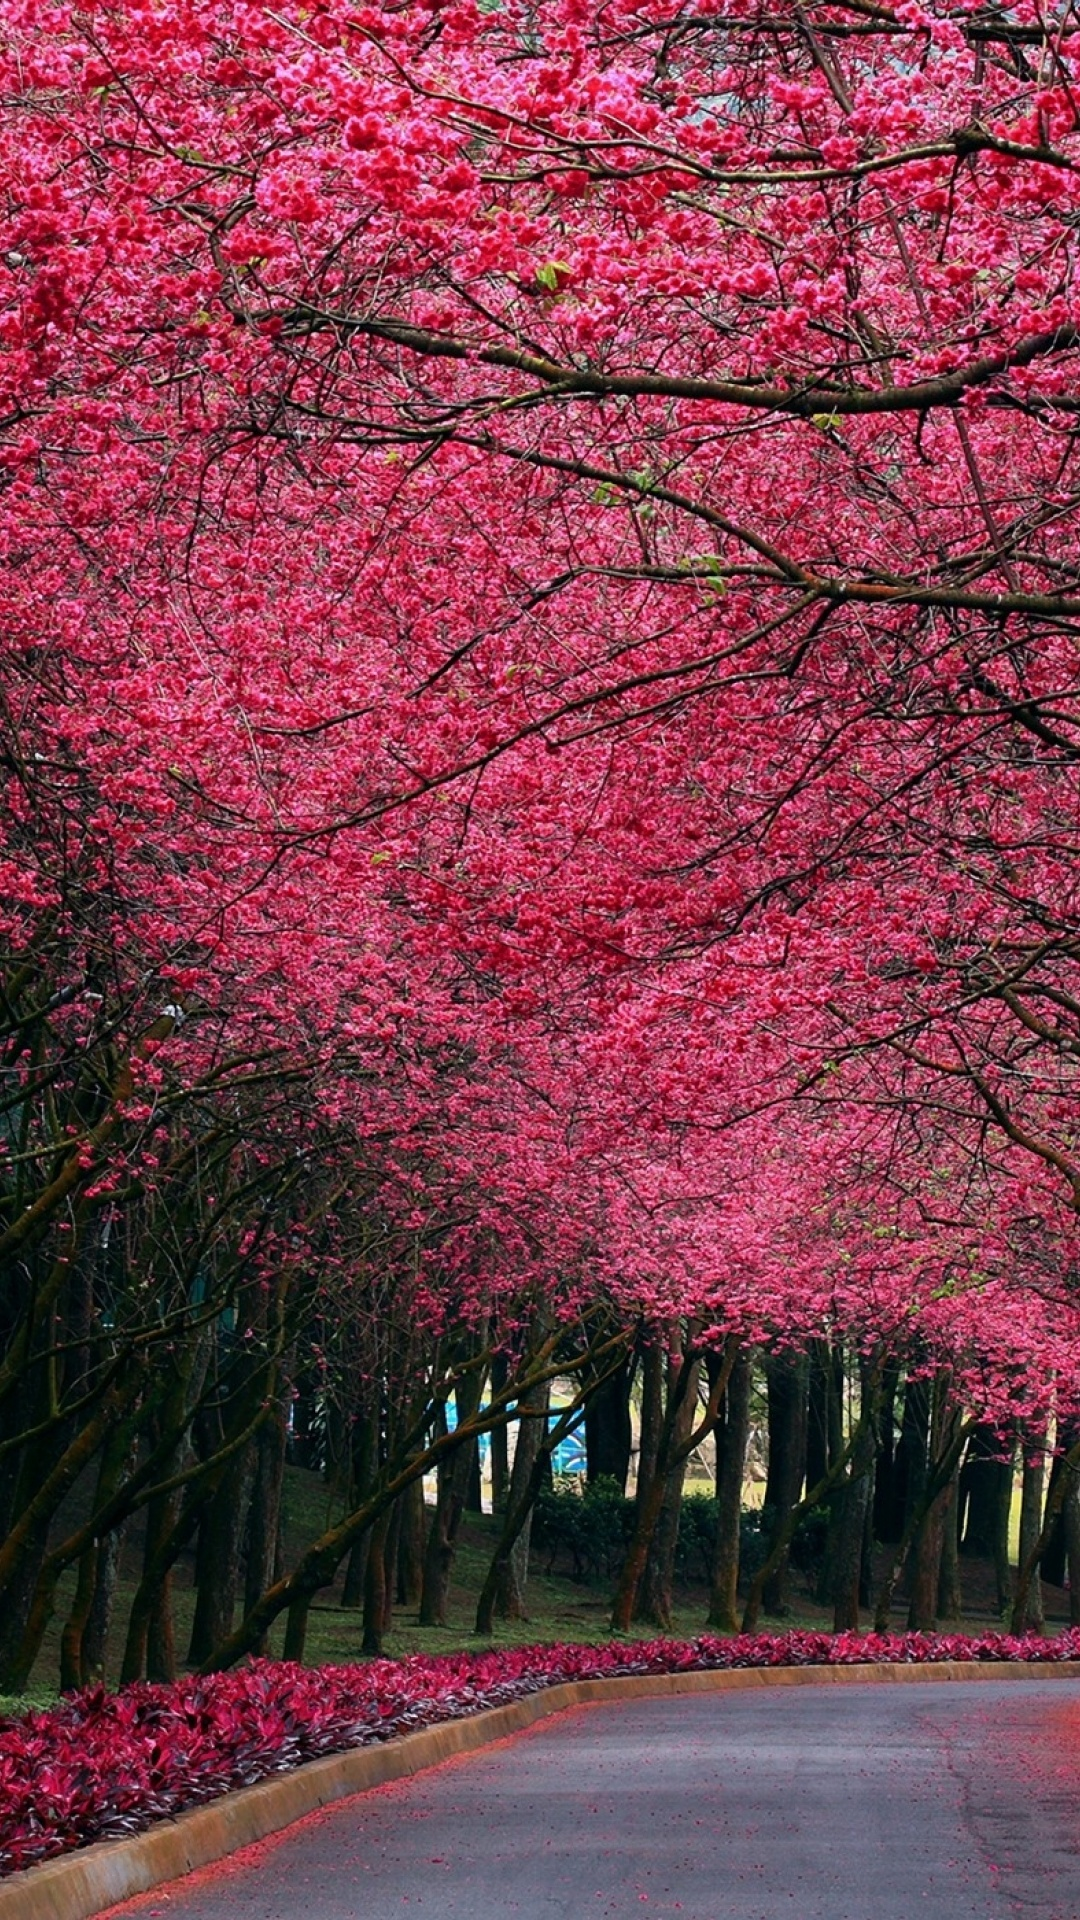 1080x1920 Pink Trees & Road Spring Time Htc one wallpaper